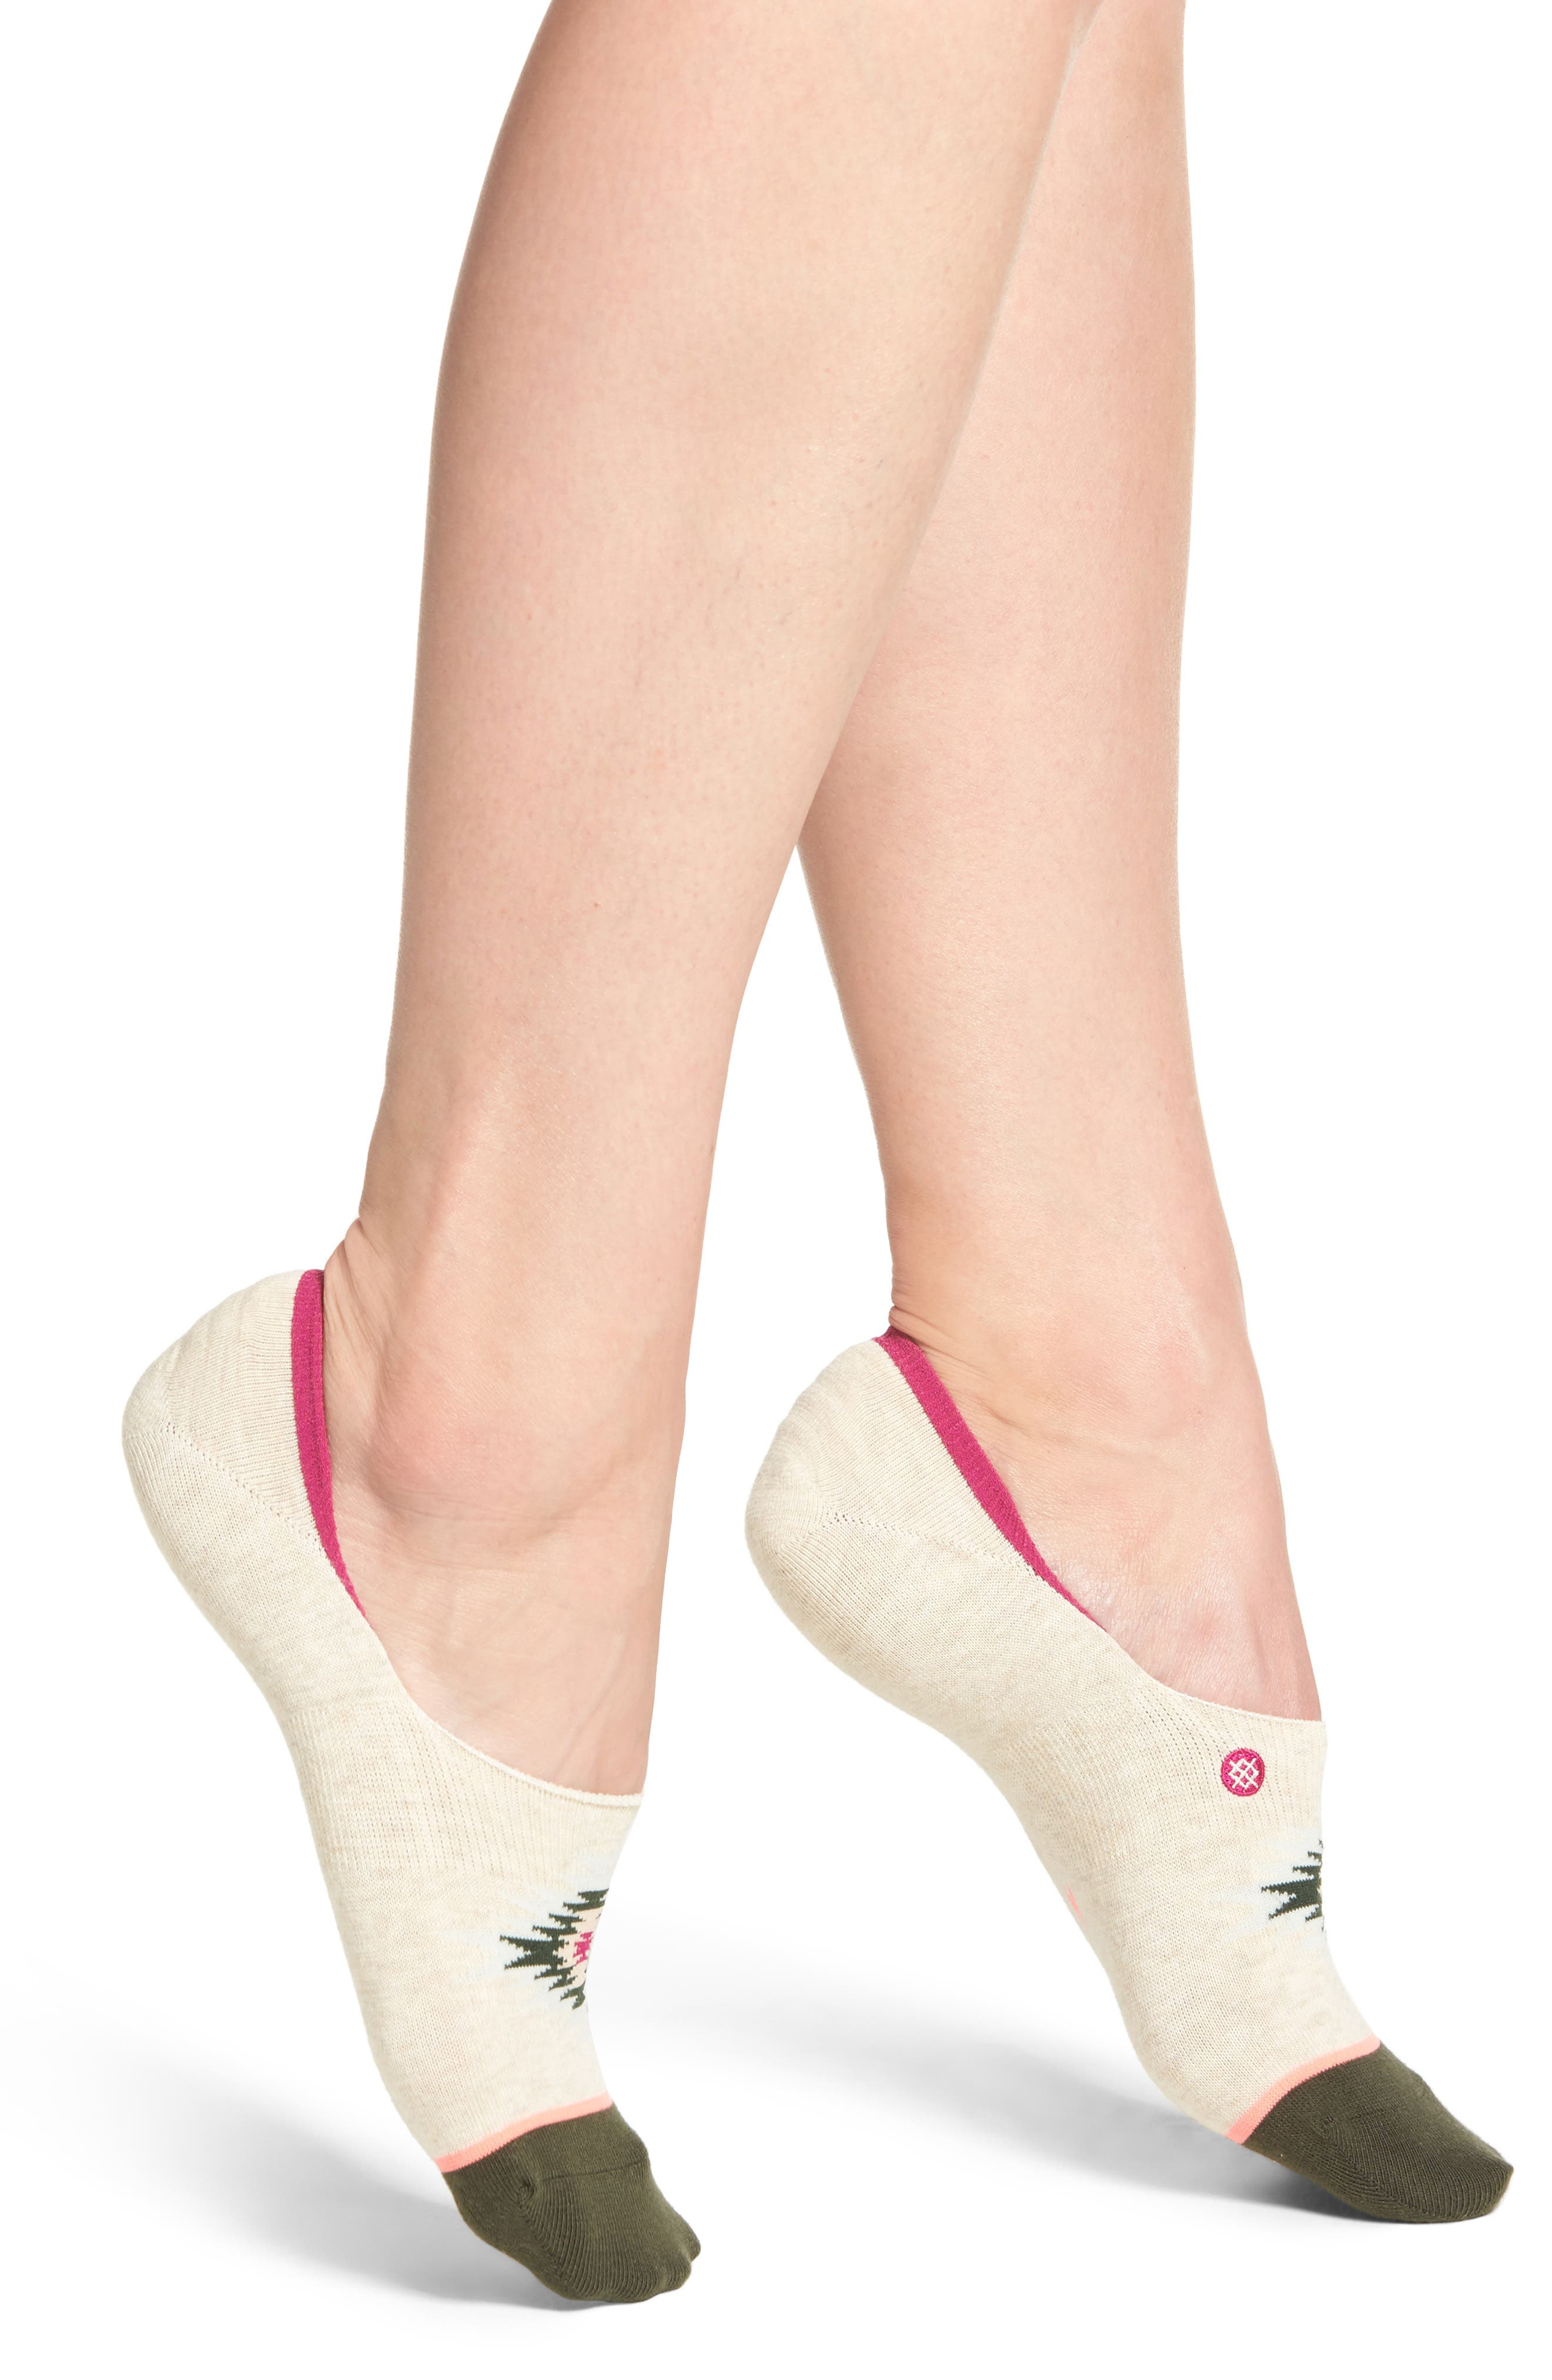 Krista Invisible Liner Socks,                         Main,                         color, Oatmeal Heather